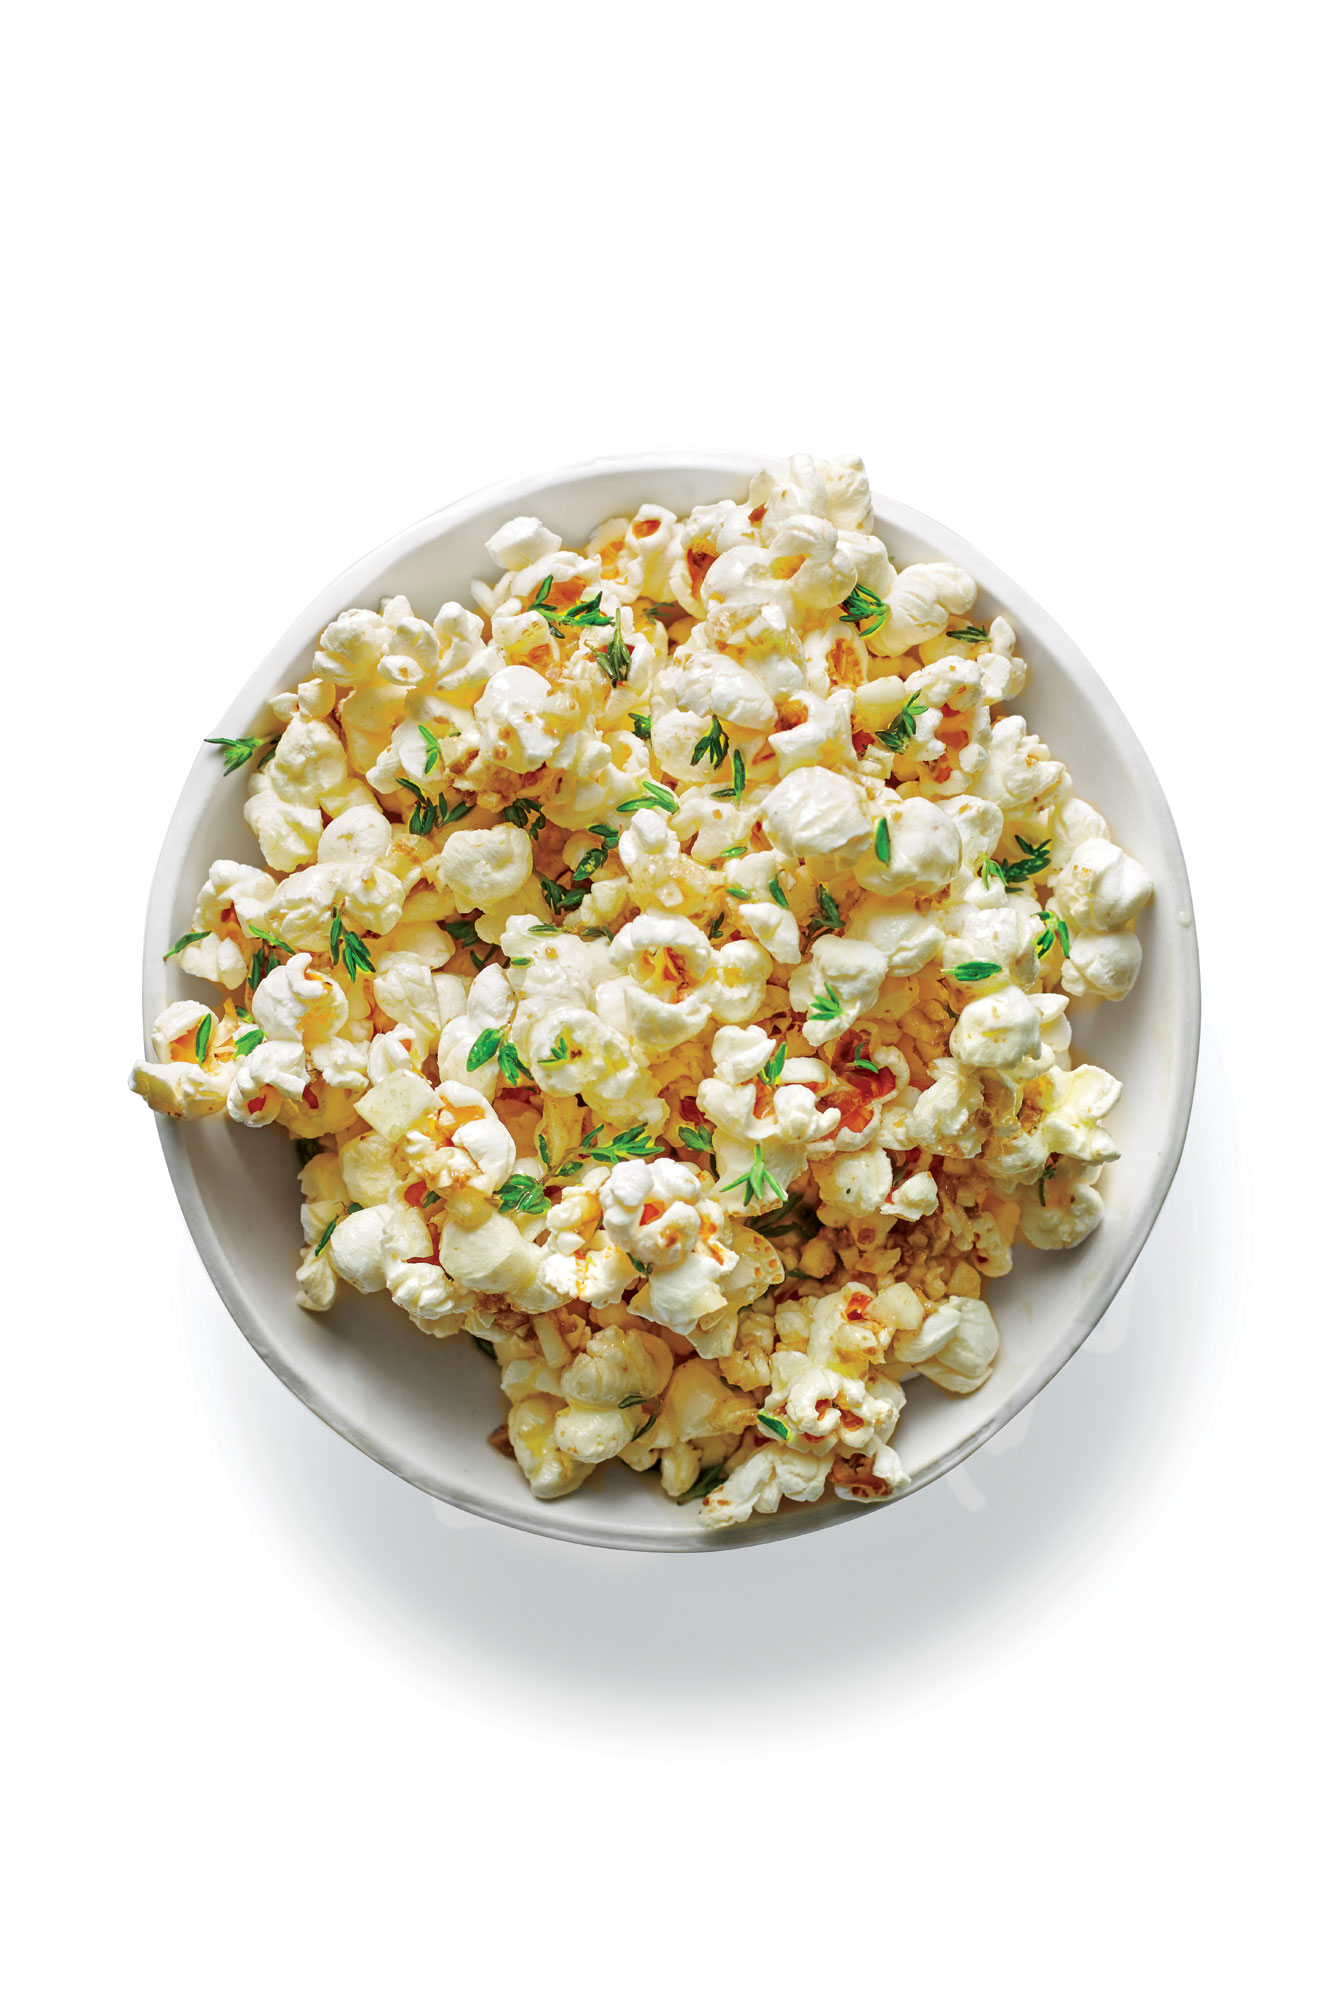 Why You Should Make Fresh Popcorn on the Stovetop